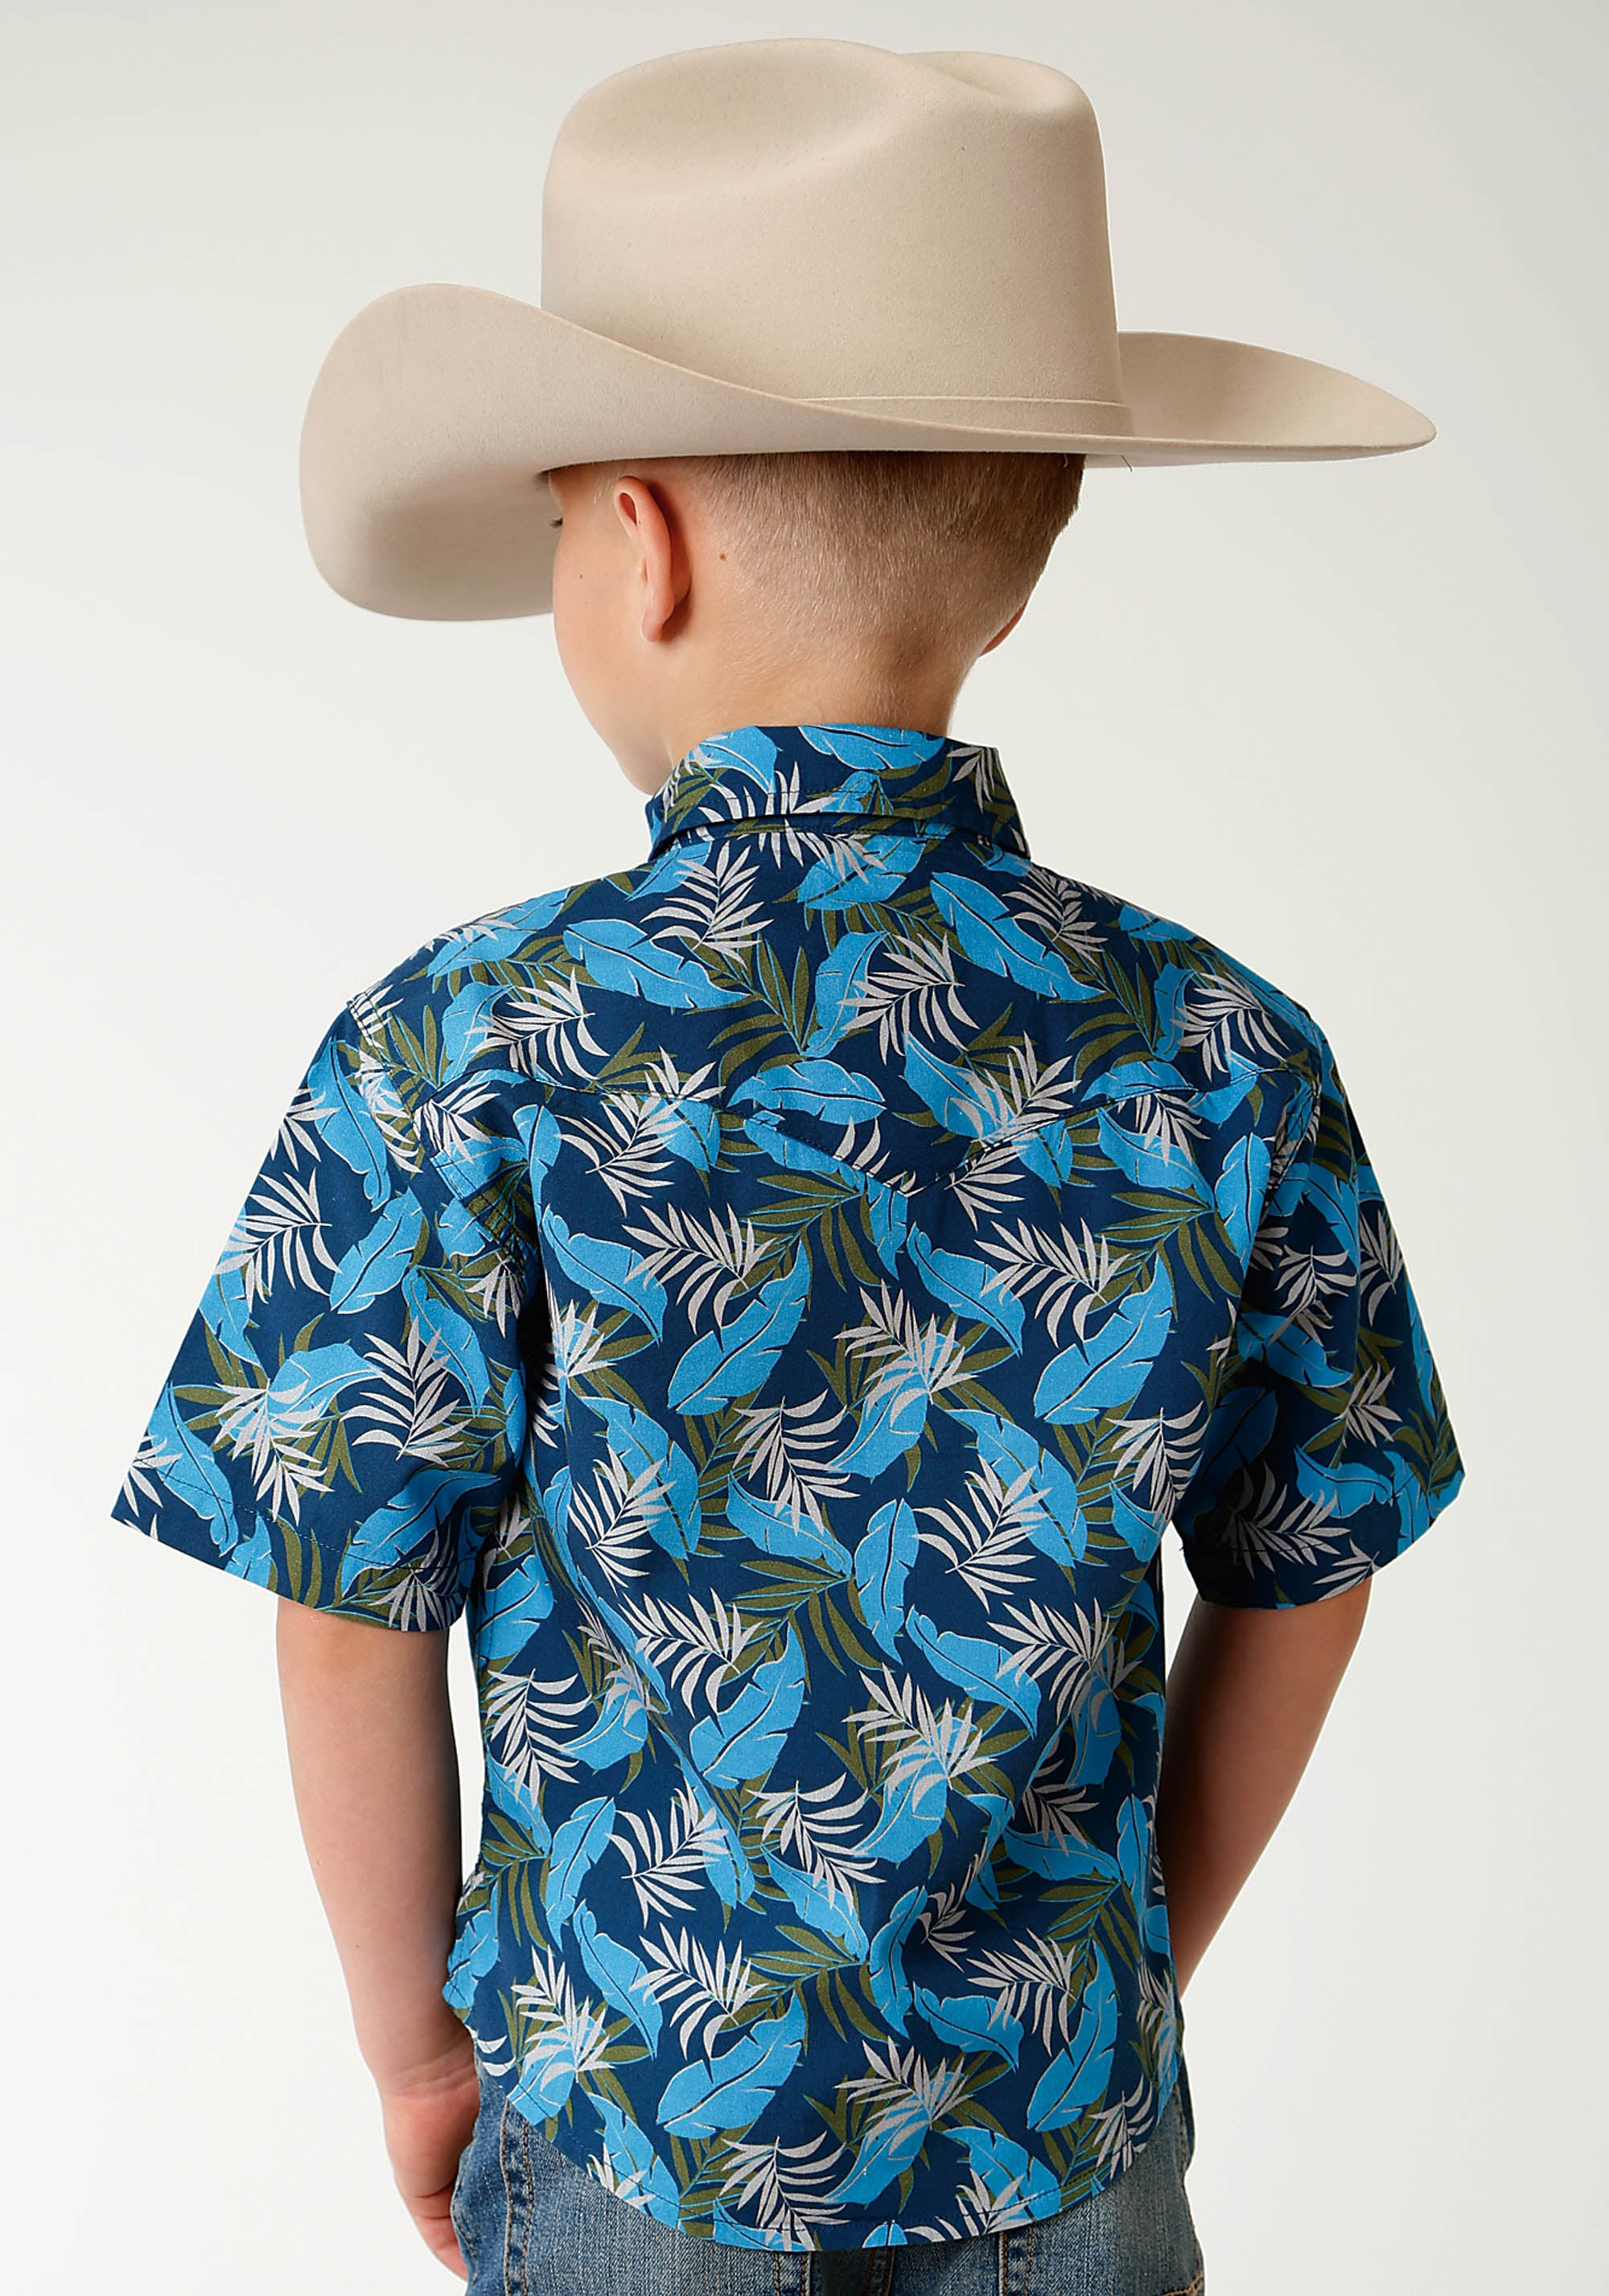 ROPER BOYS BLUE 2612 BLUE TROPICS PRINT WEST MADE COLLECTION SHORT SLEEVE